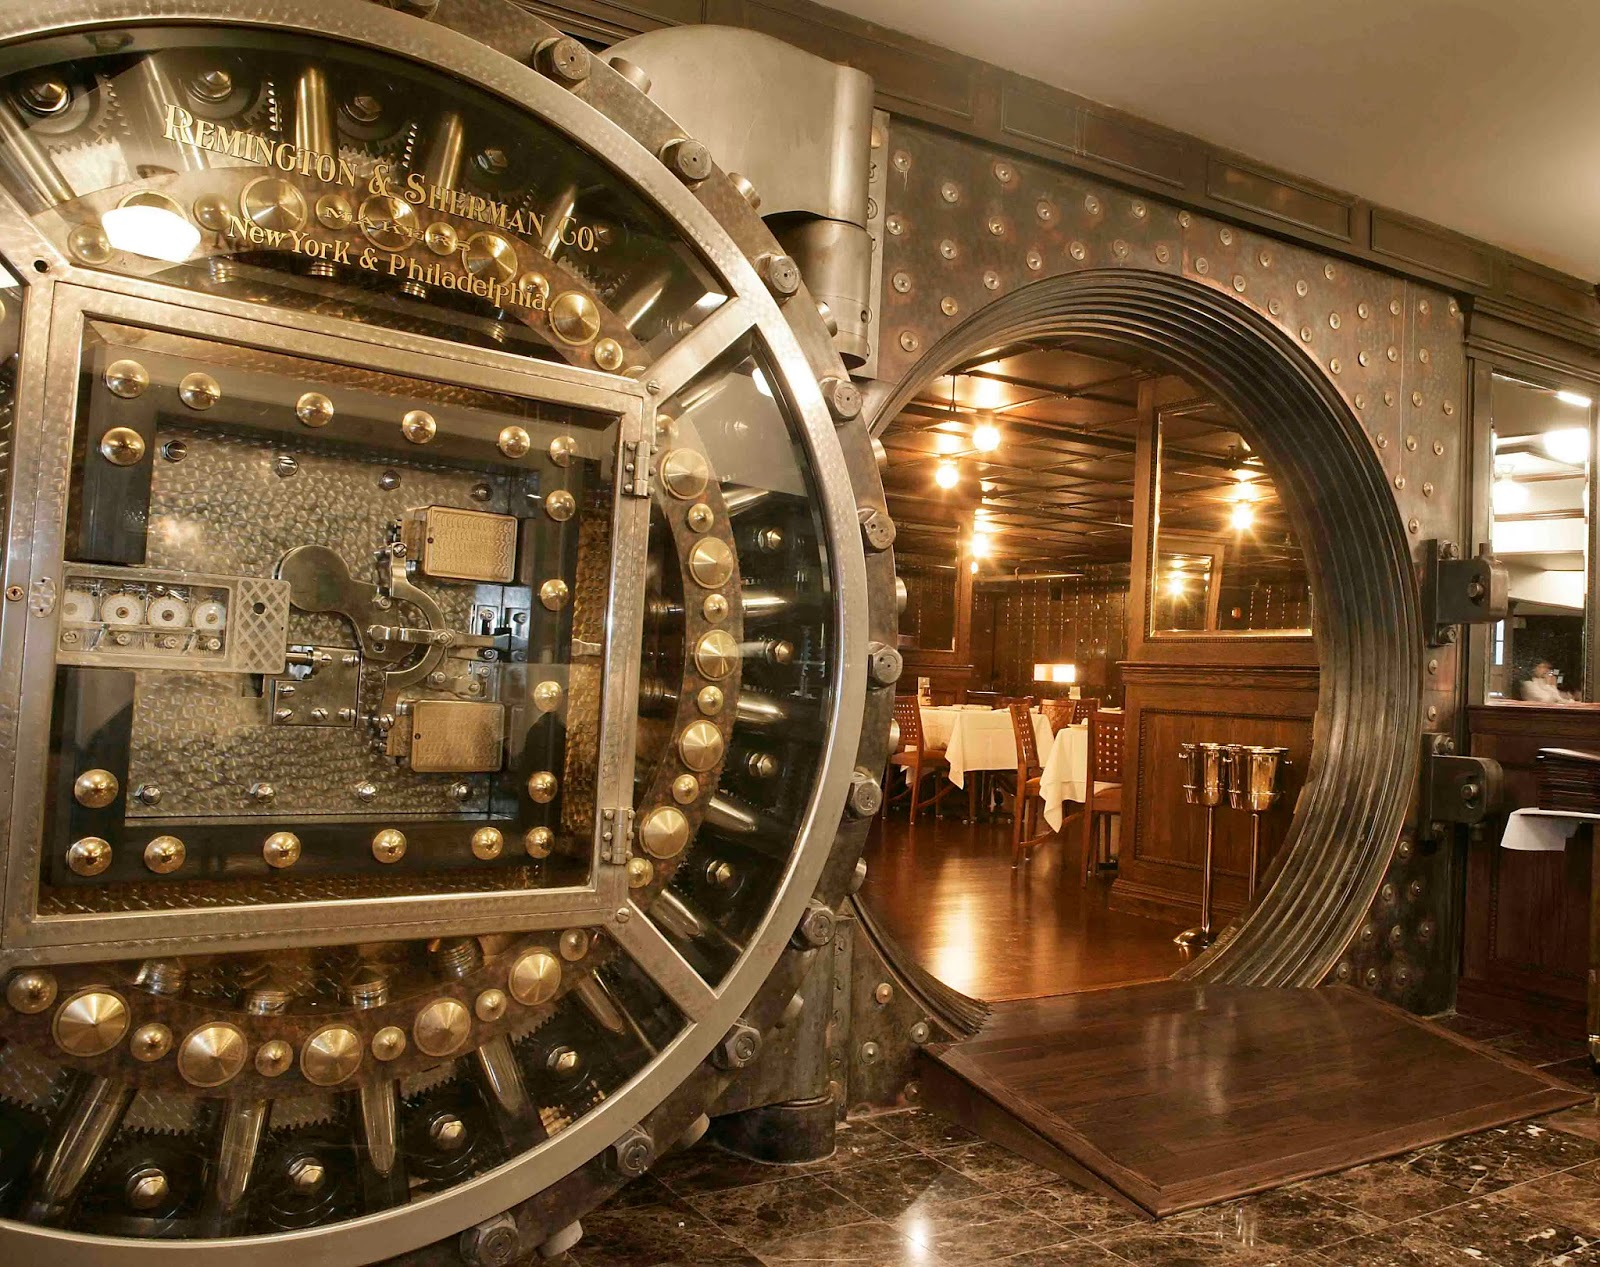 Restaurant in an old bank vault